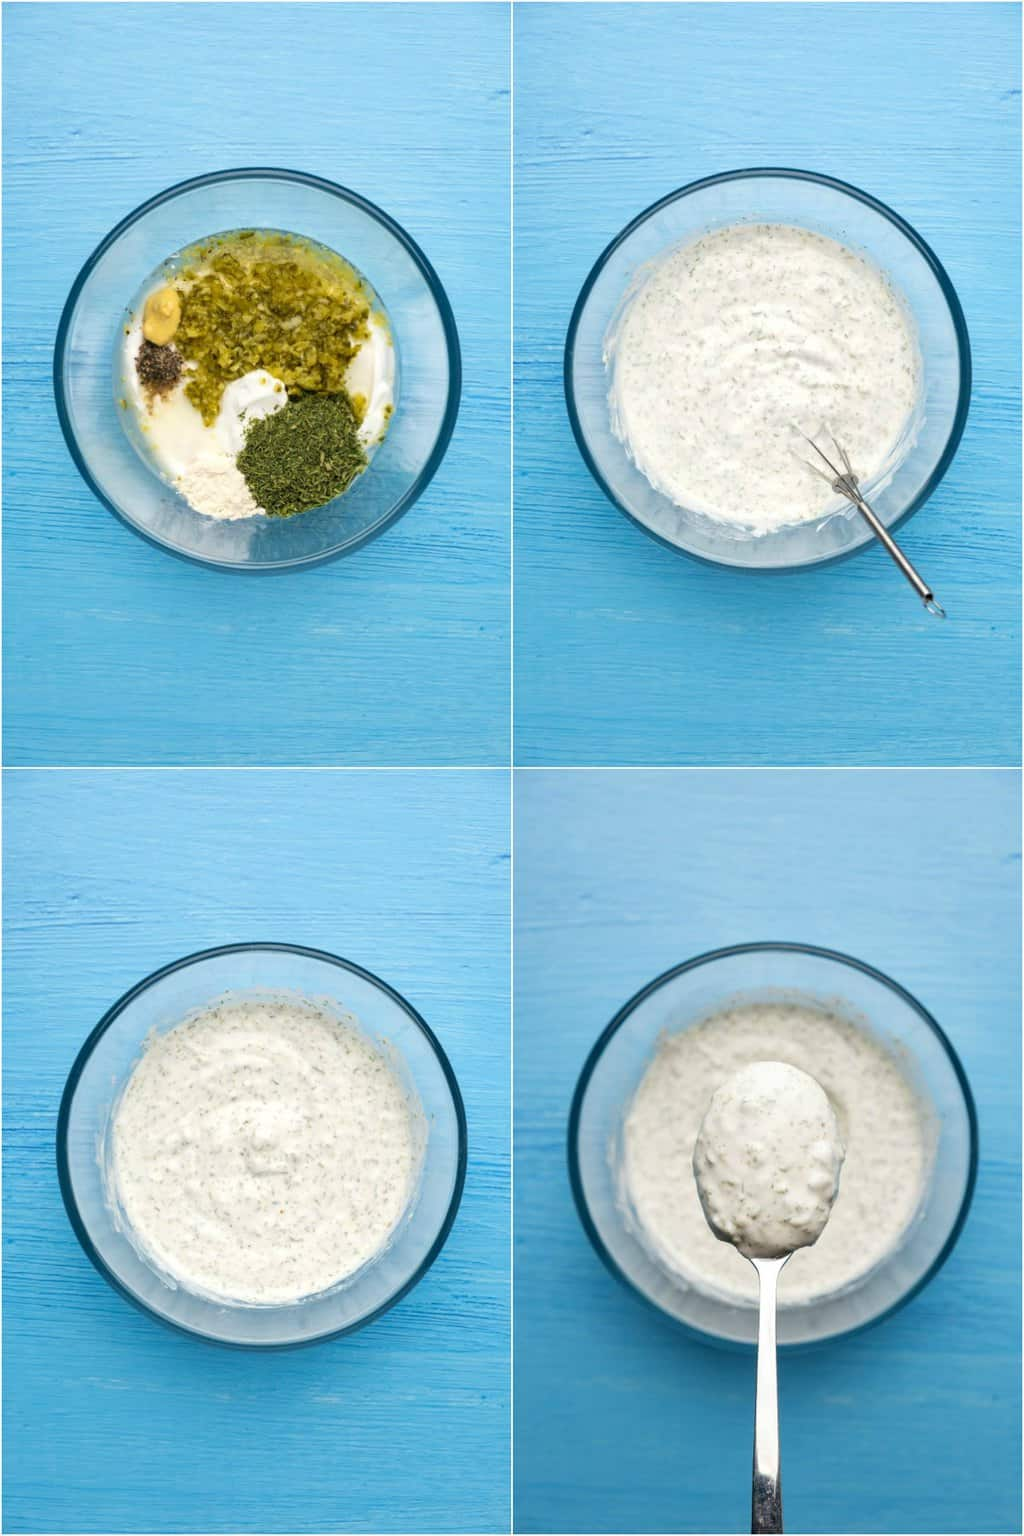 Step by step process photo collage for how to make vegan tartar sauce.